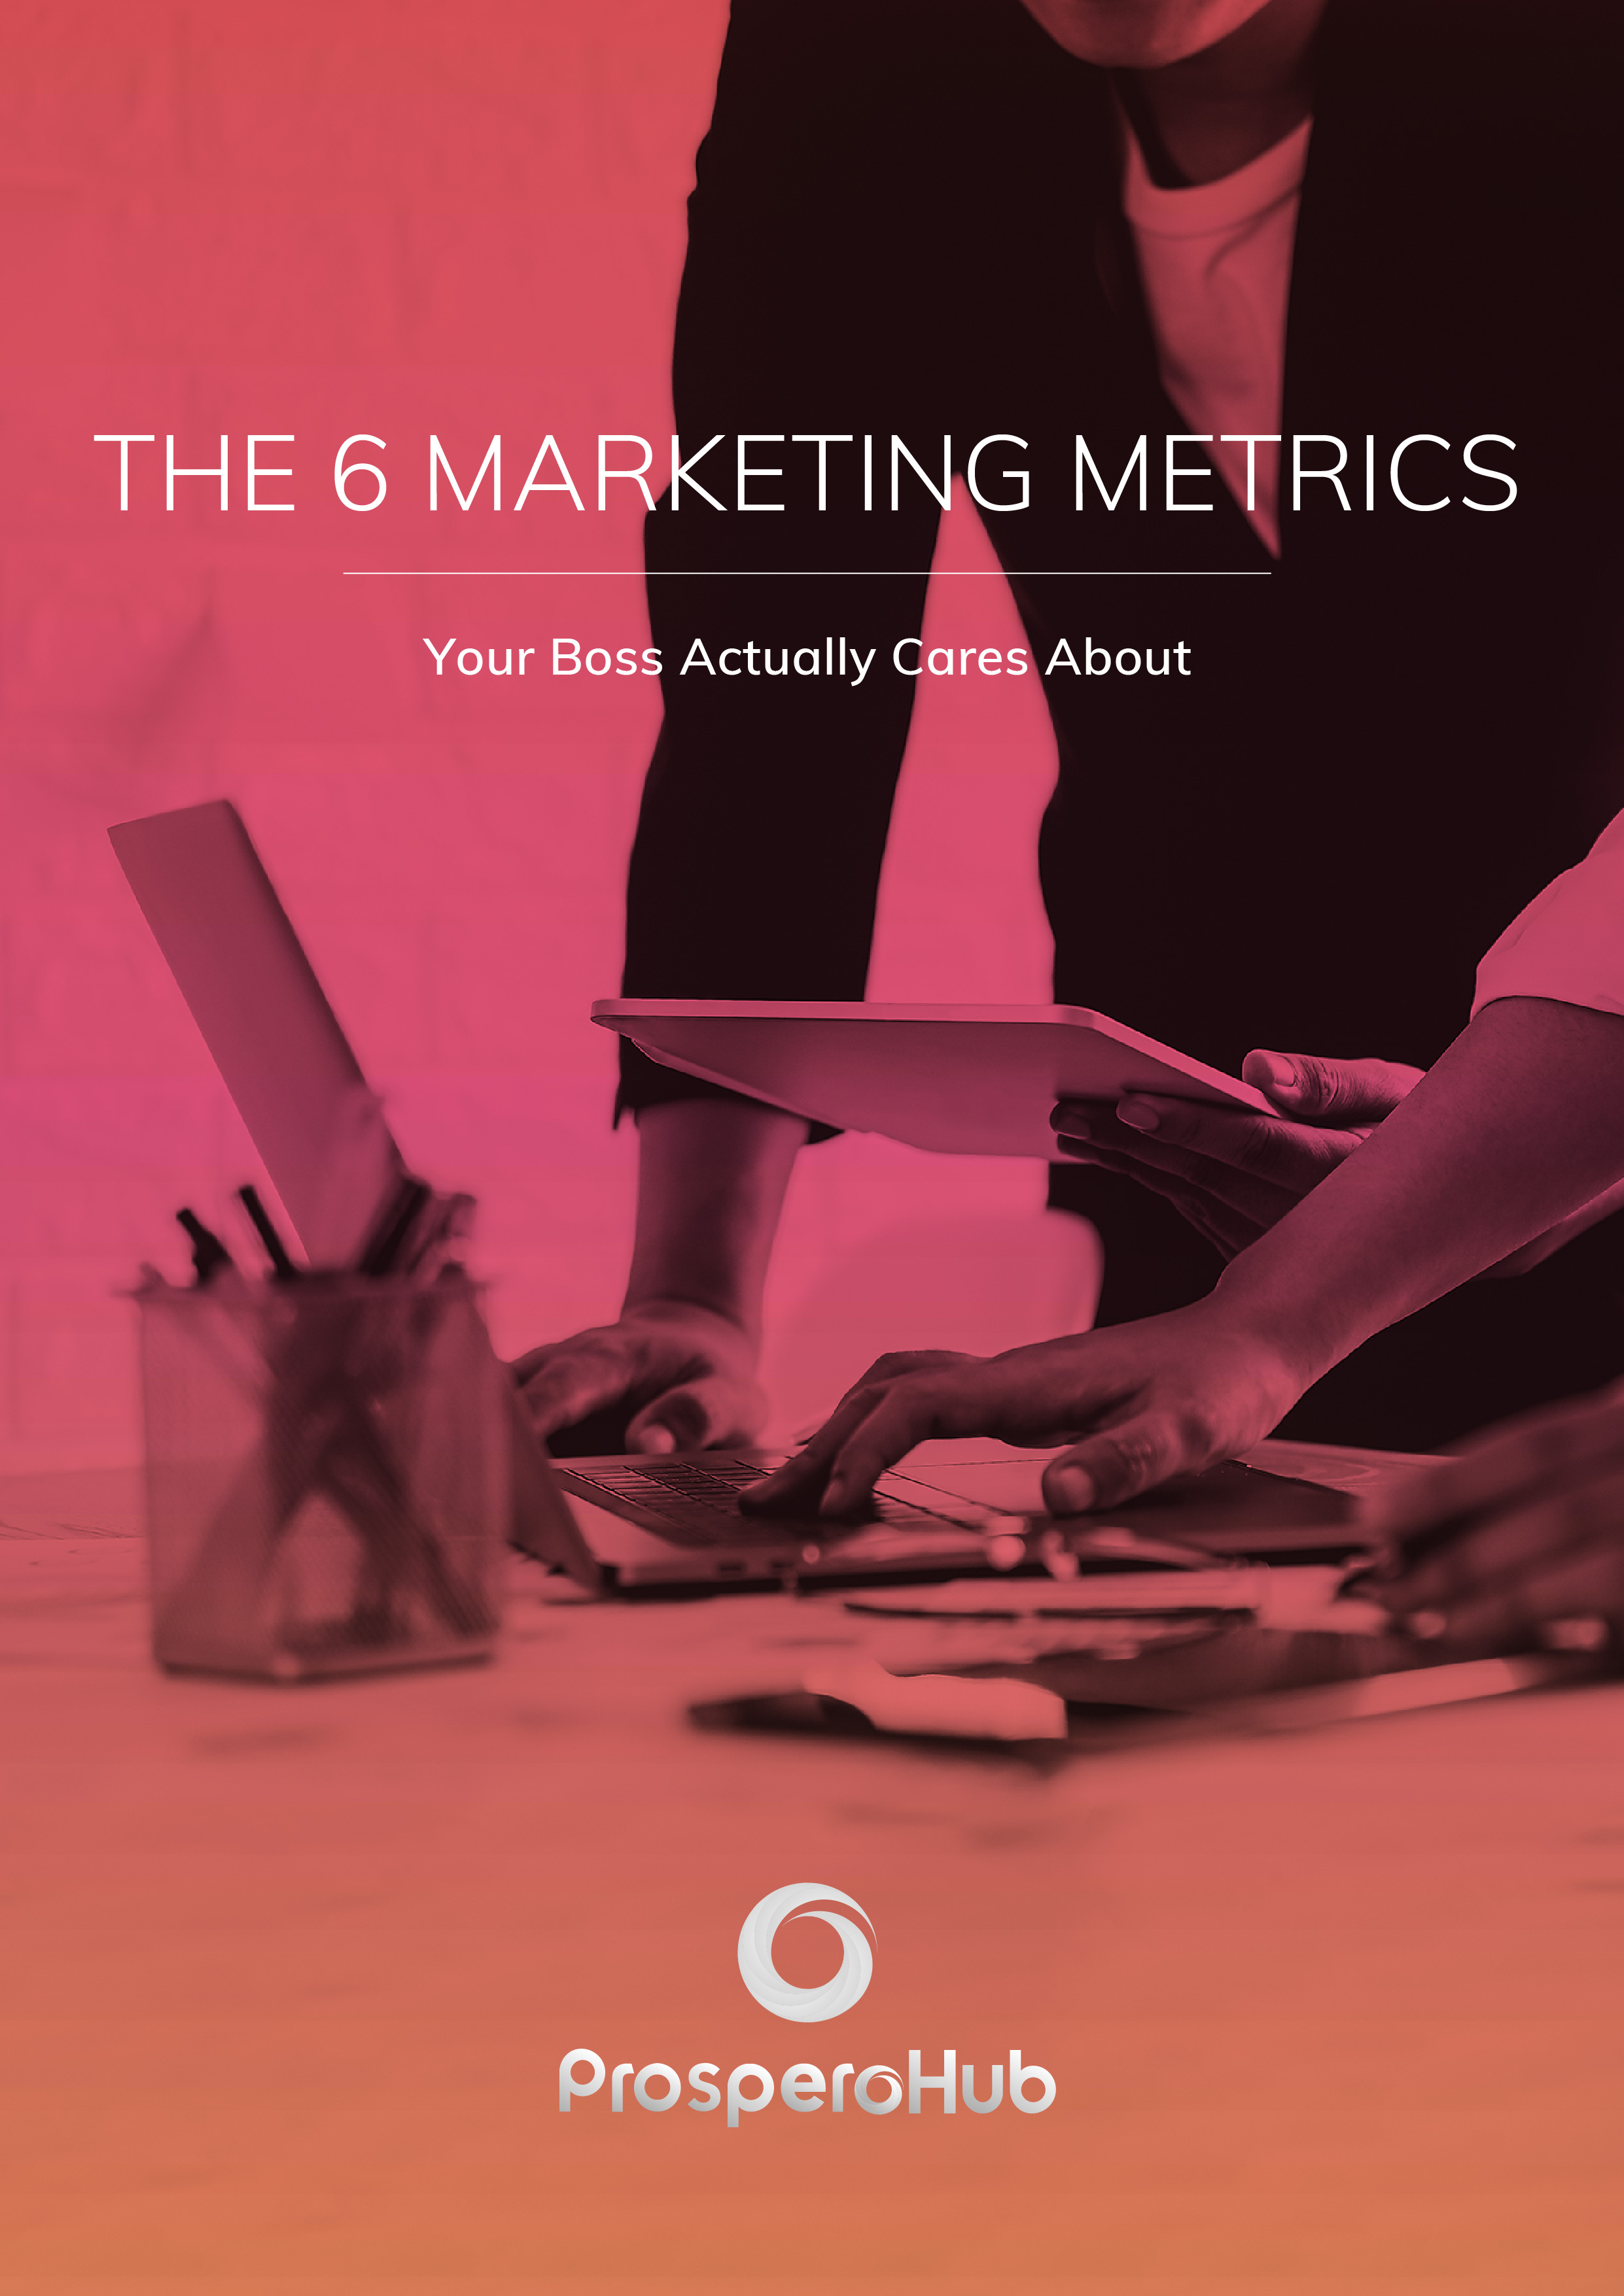 ProsperoHub-The 6 Marketing Metrics your Boss actually cares about - Cover 2